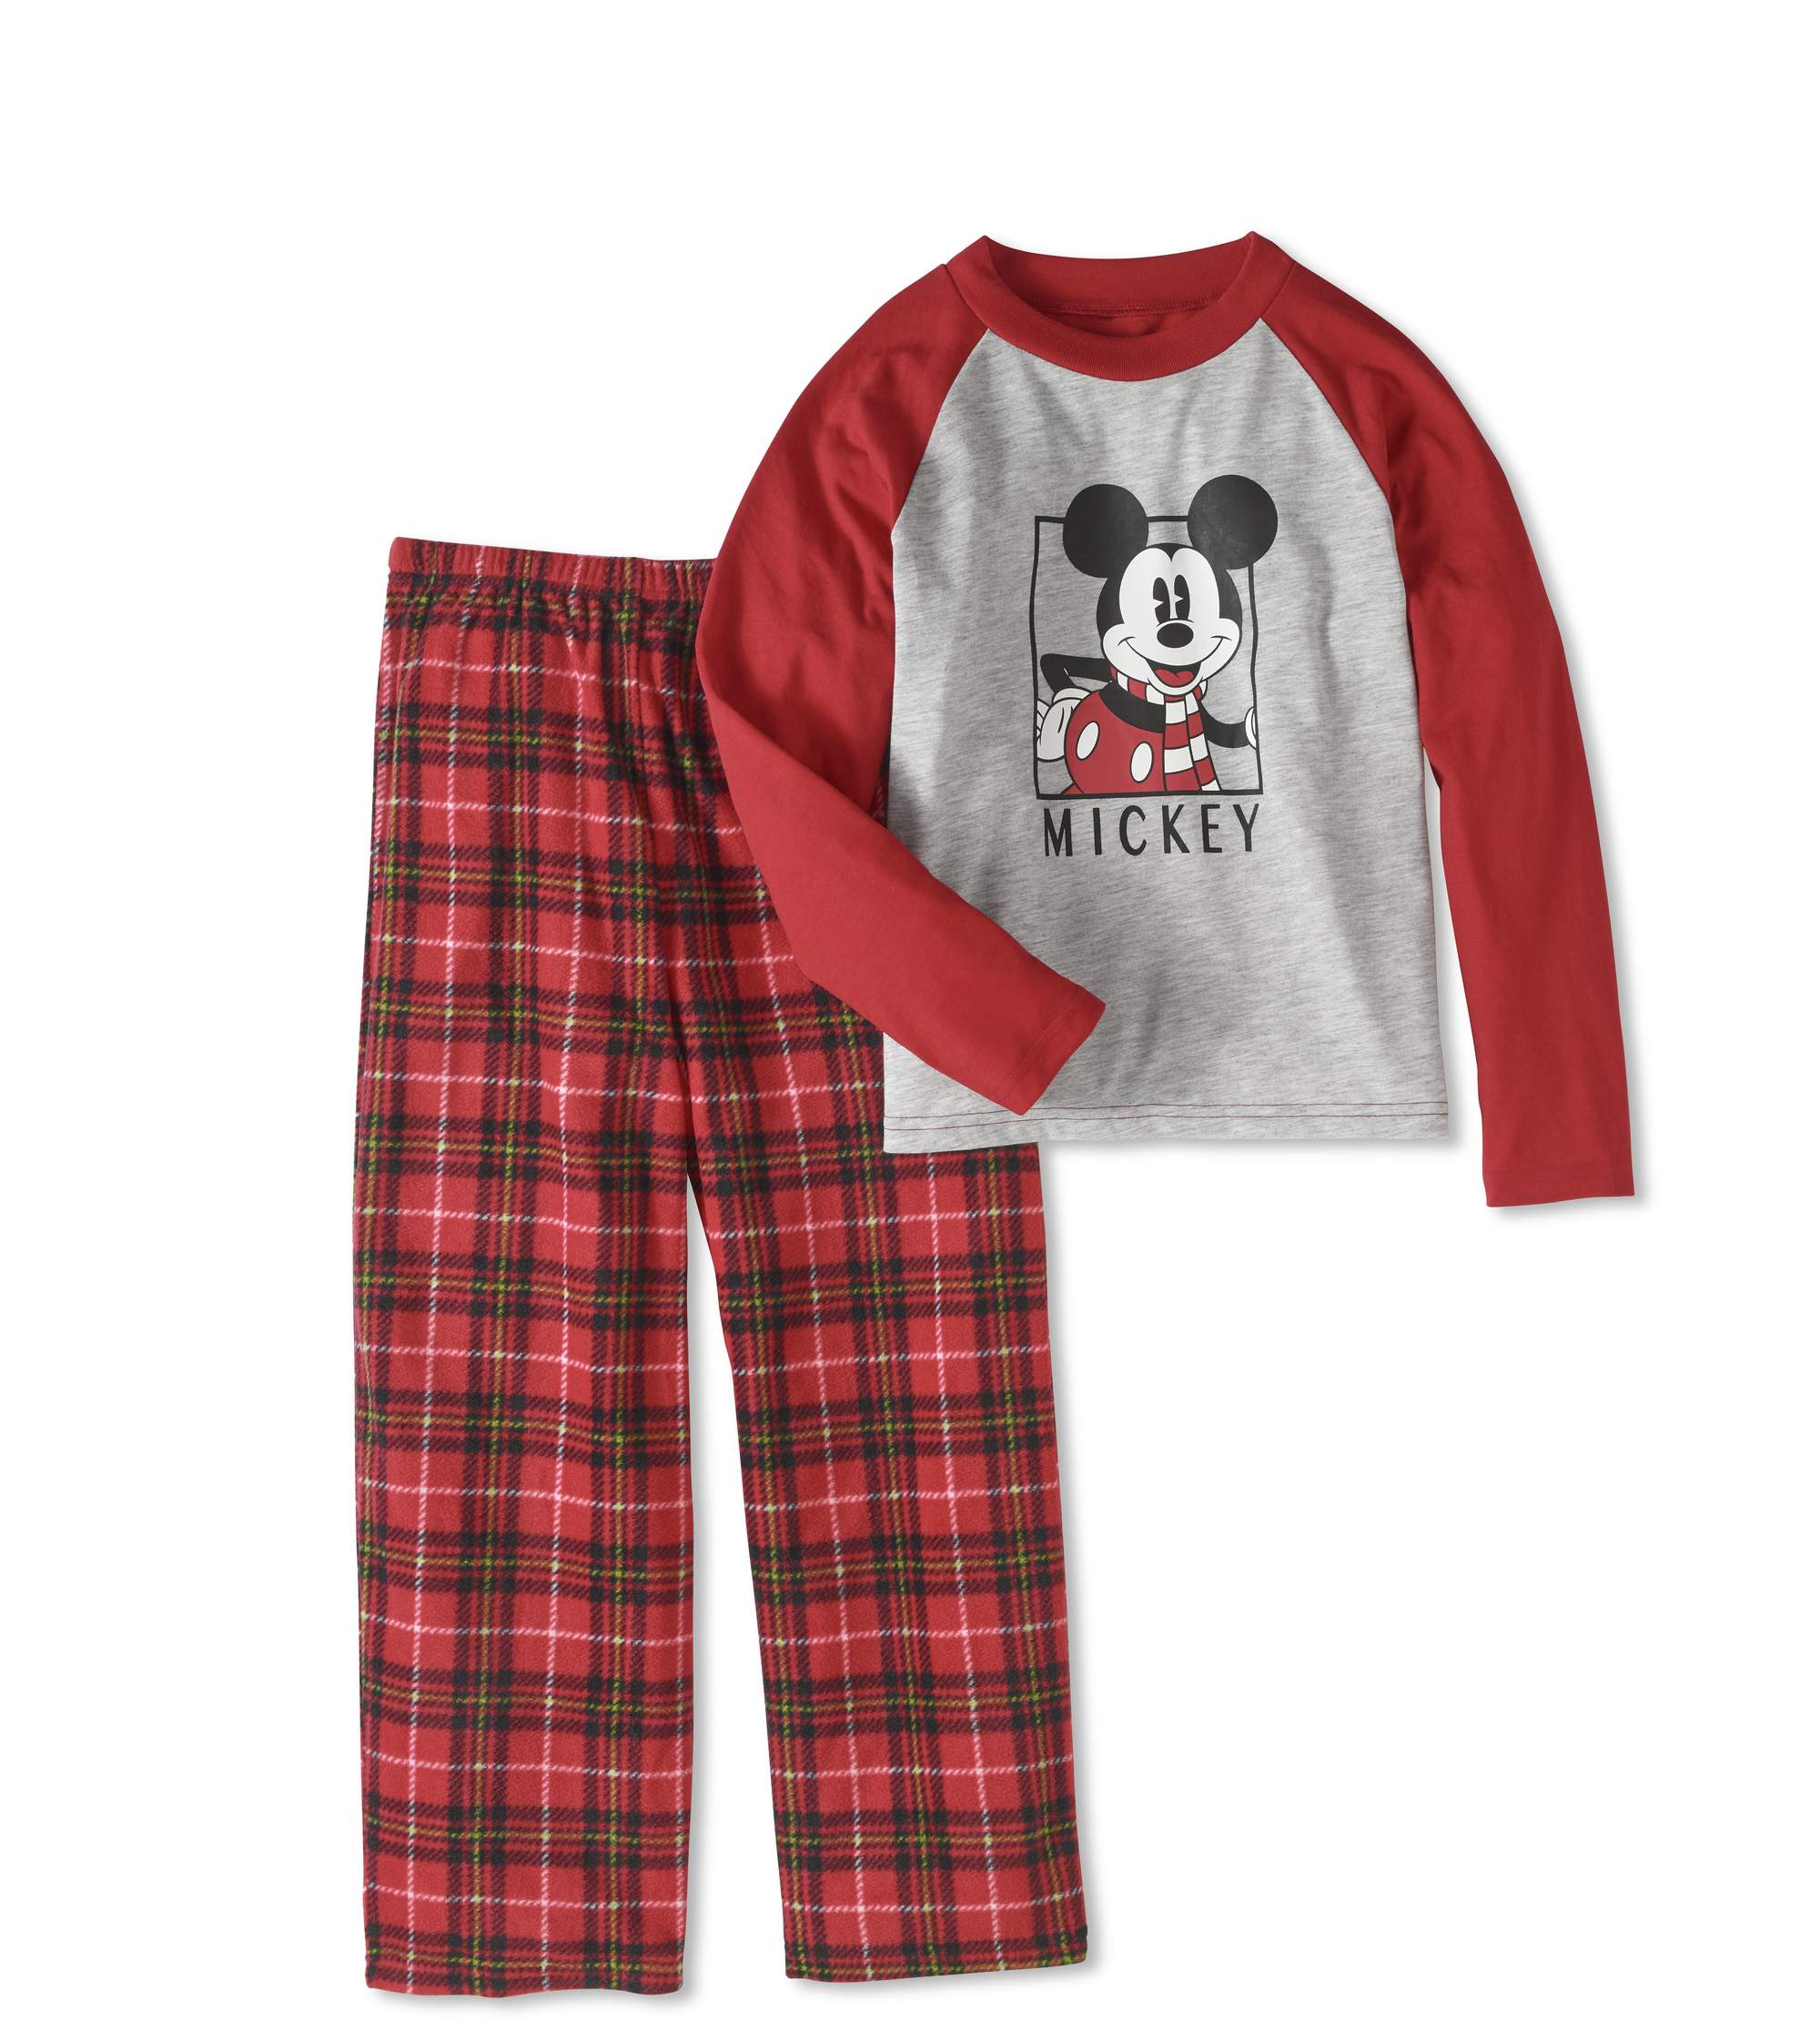 Mickey Mouse Boys' or Girls' Unisex Family Sleep 2pc Sleepwear Pajamas Set